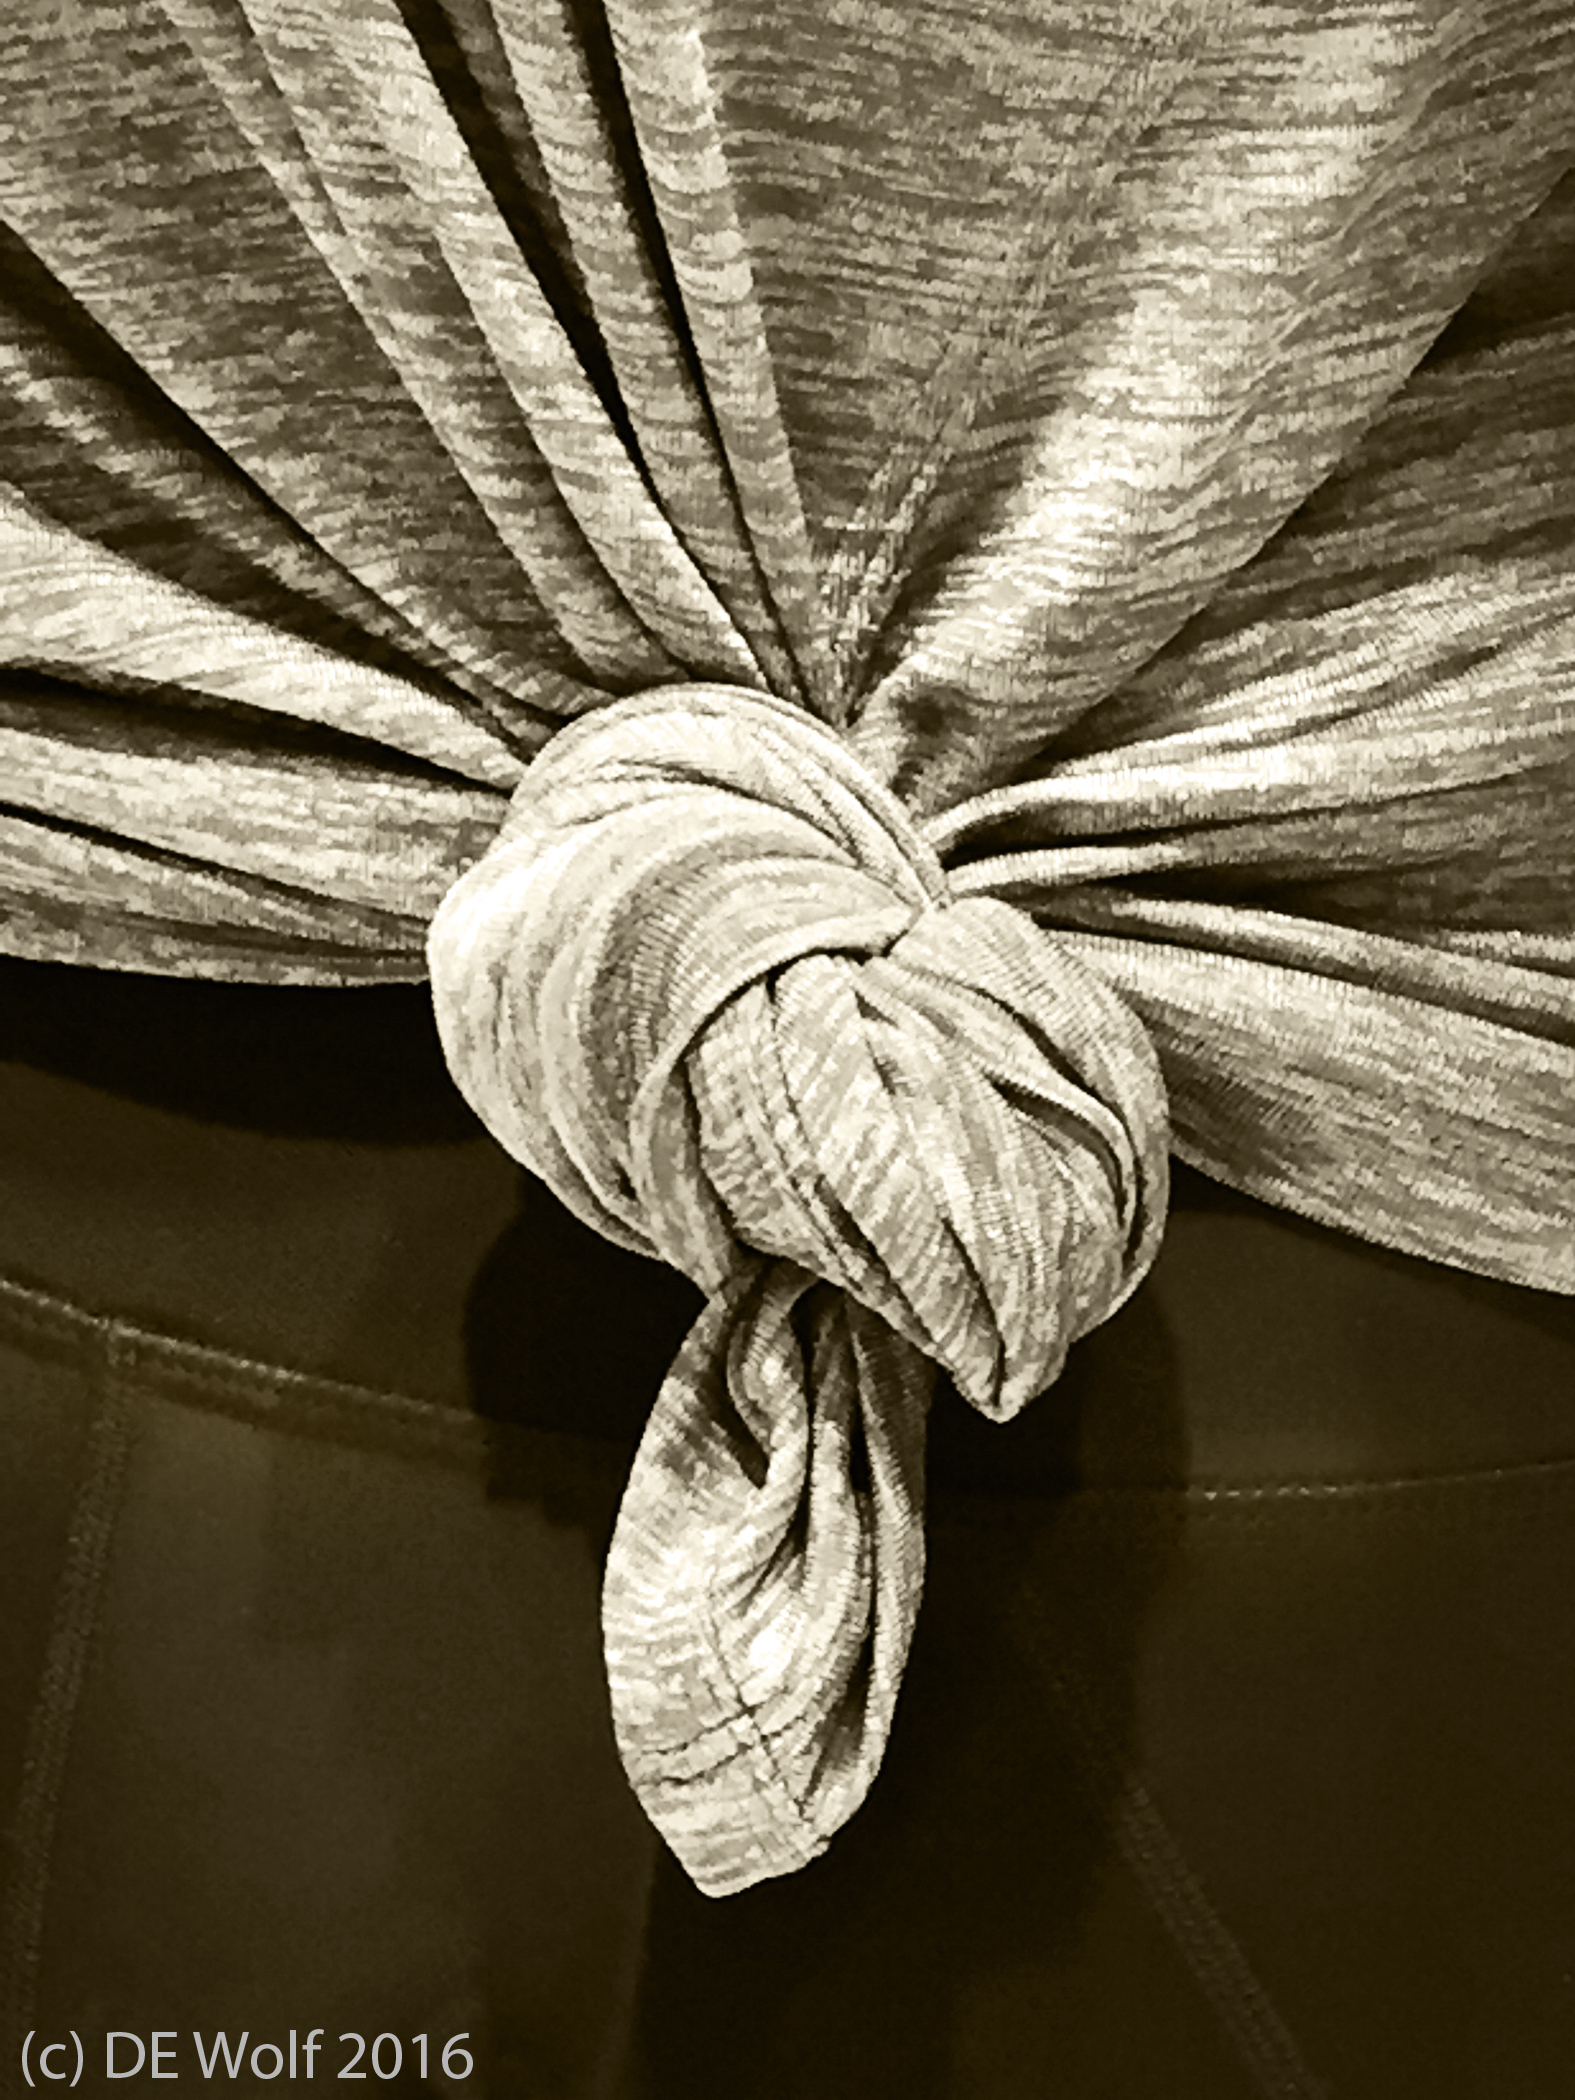 Figure 1 - Bunched cloth, IPhone photograph. (c) DE Wolf 2016.